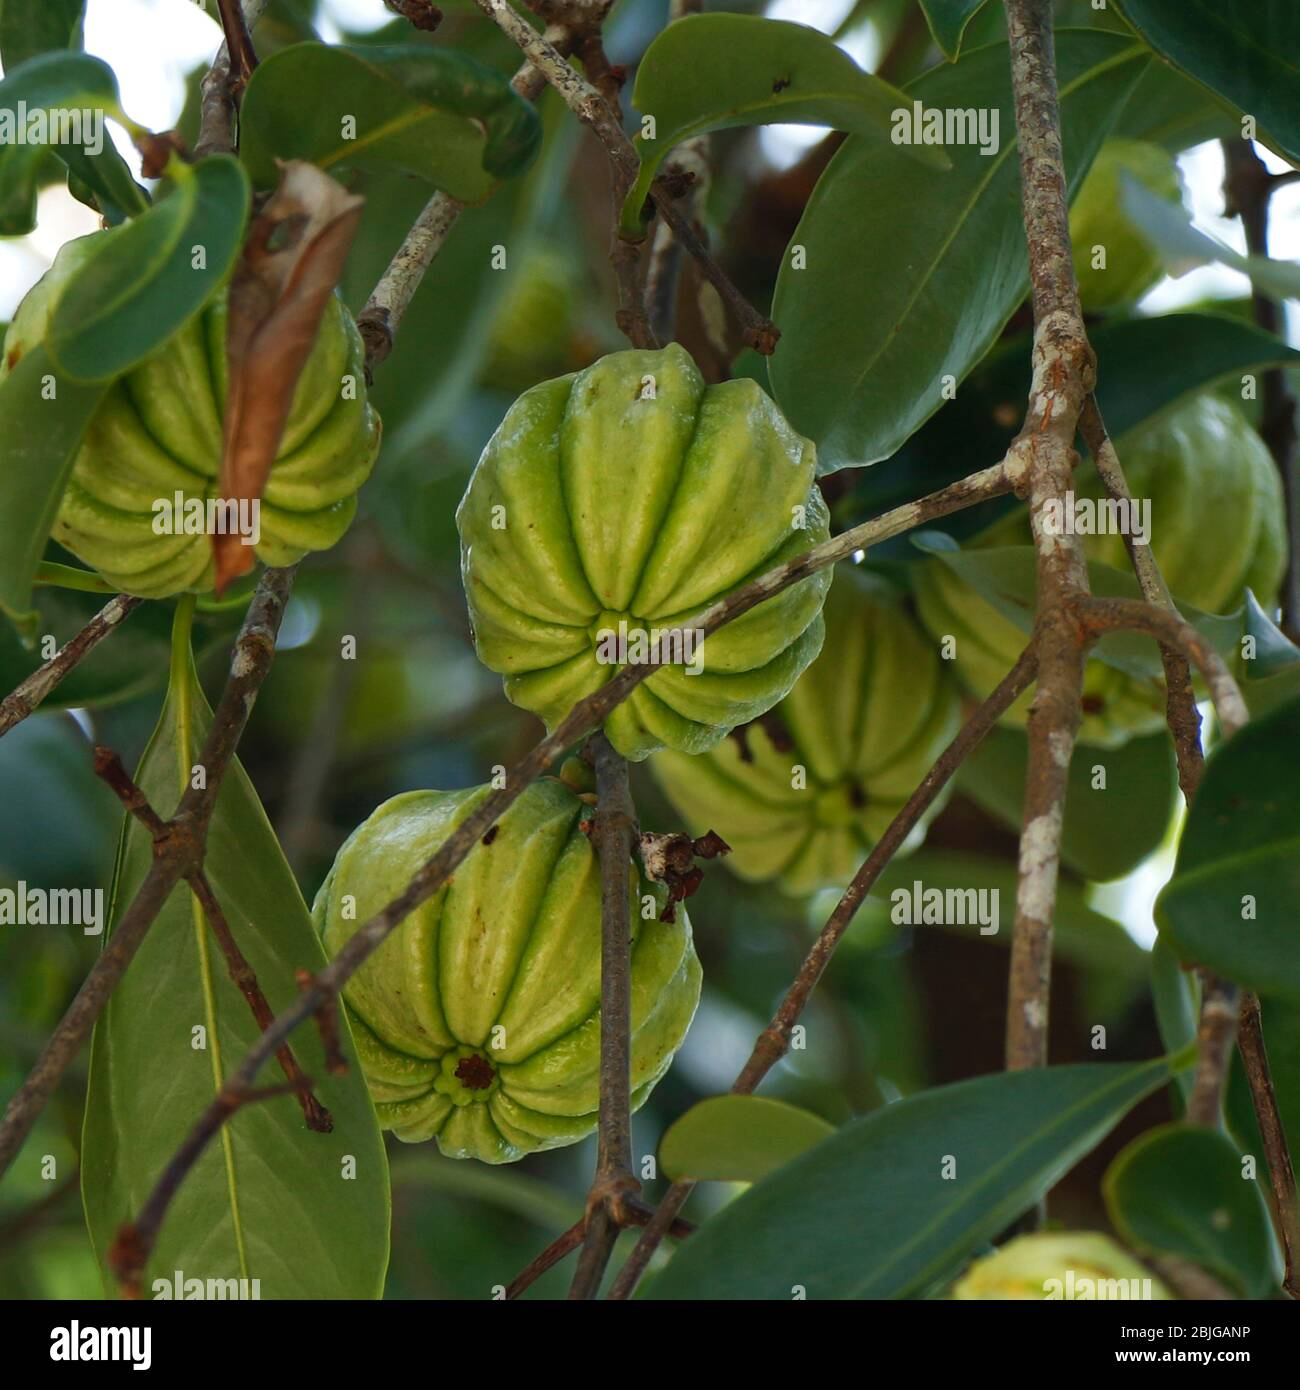 Bunch Of Green Garcinia Cambogia Hanging In A Tree Stock Photo Alamy